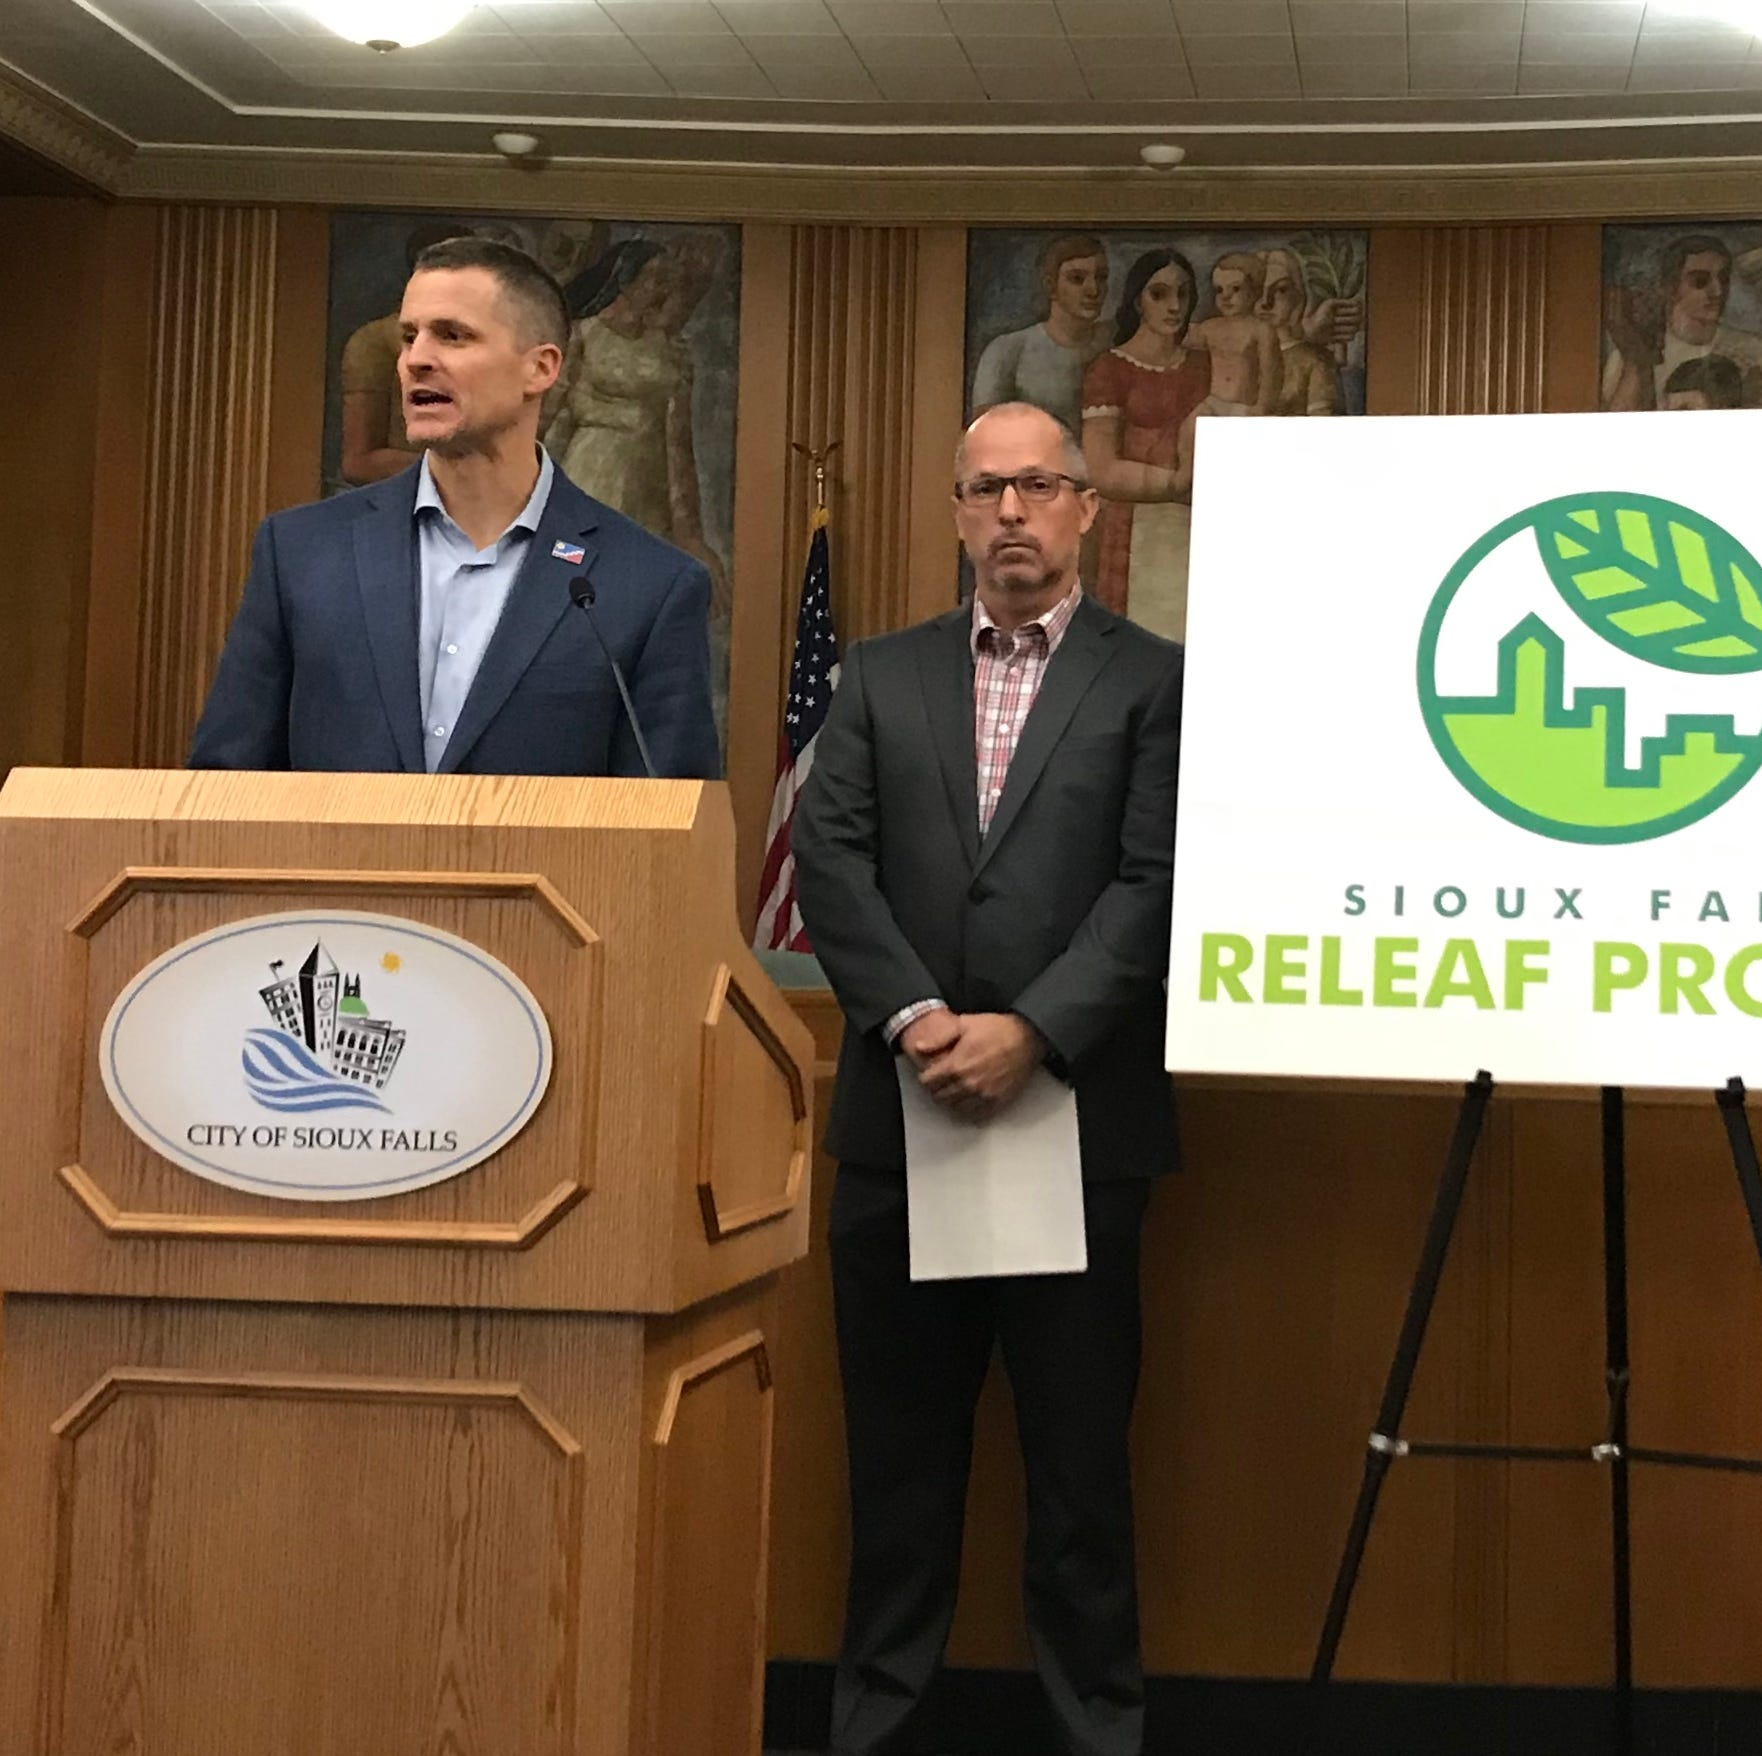 City Hall asking for the public's help to 'ReLeaf' Sioux Falls in wake of EAB outbreak